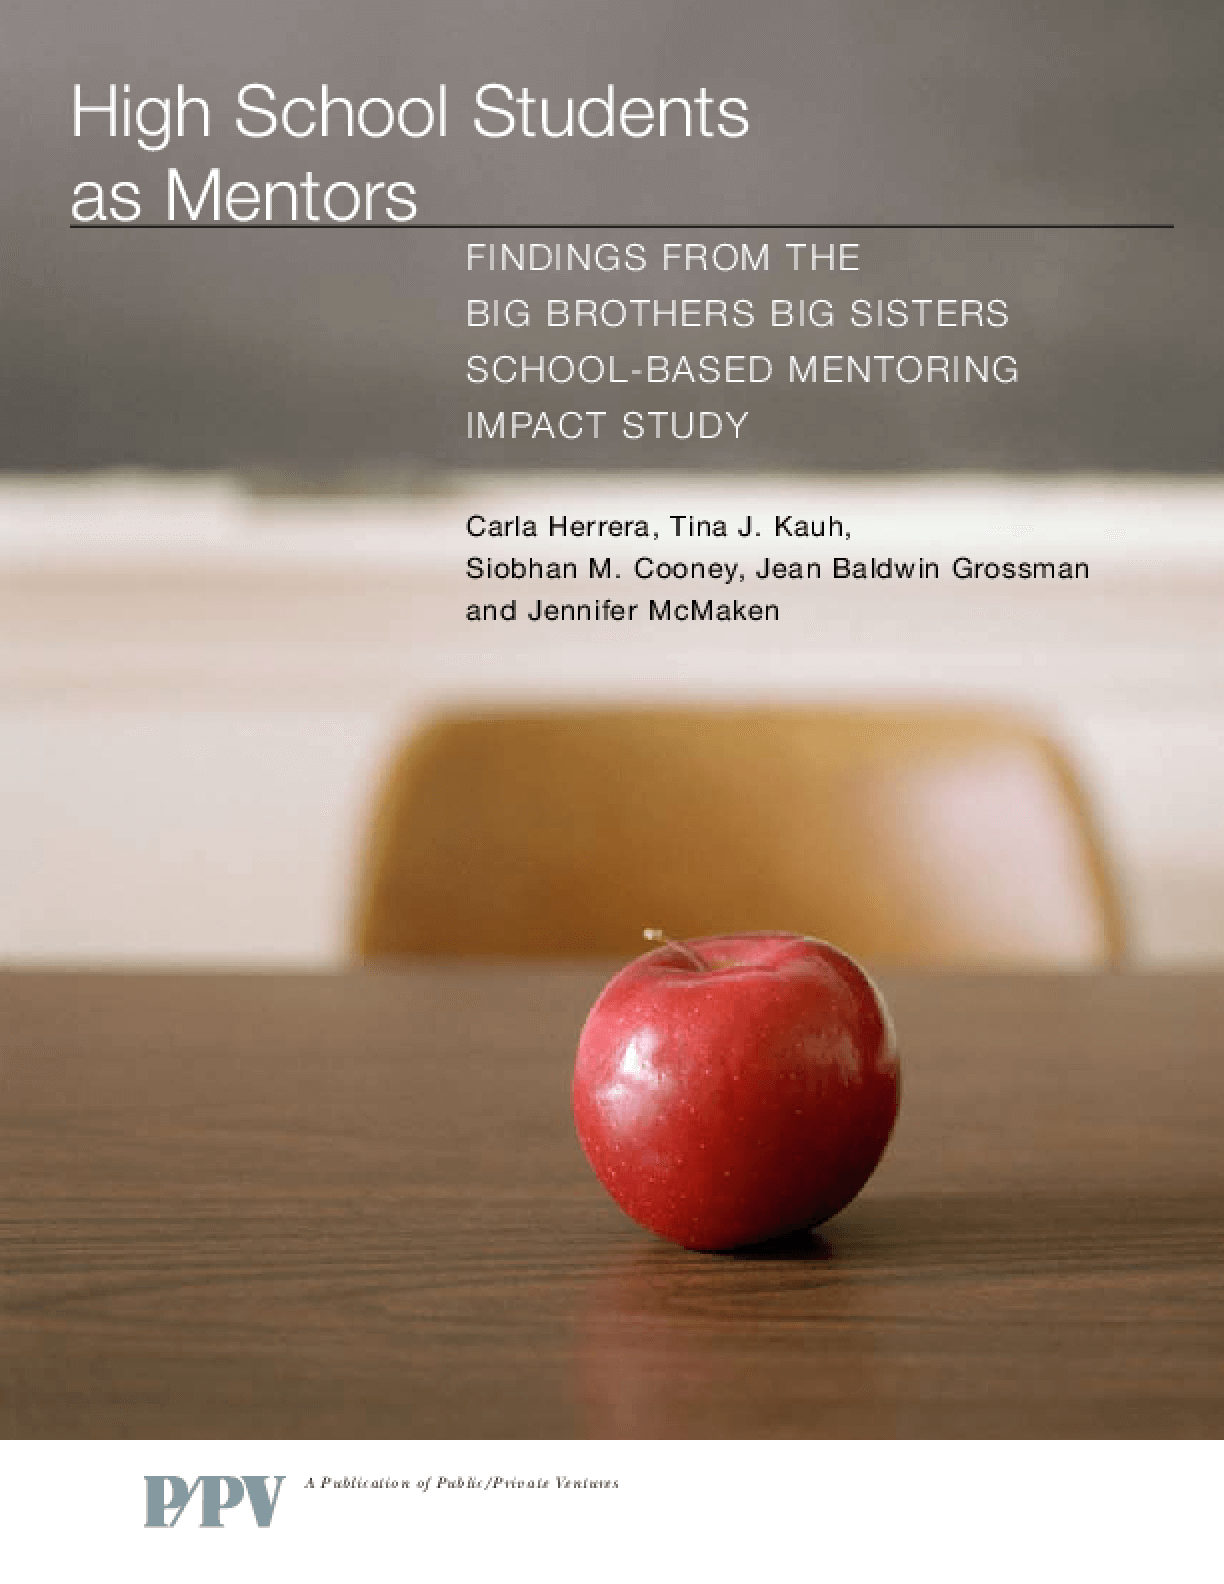 High School Students as Mentors: Findings From the Big Brothers Big Sisters School-Based Mentoring Impact Study